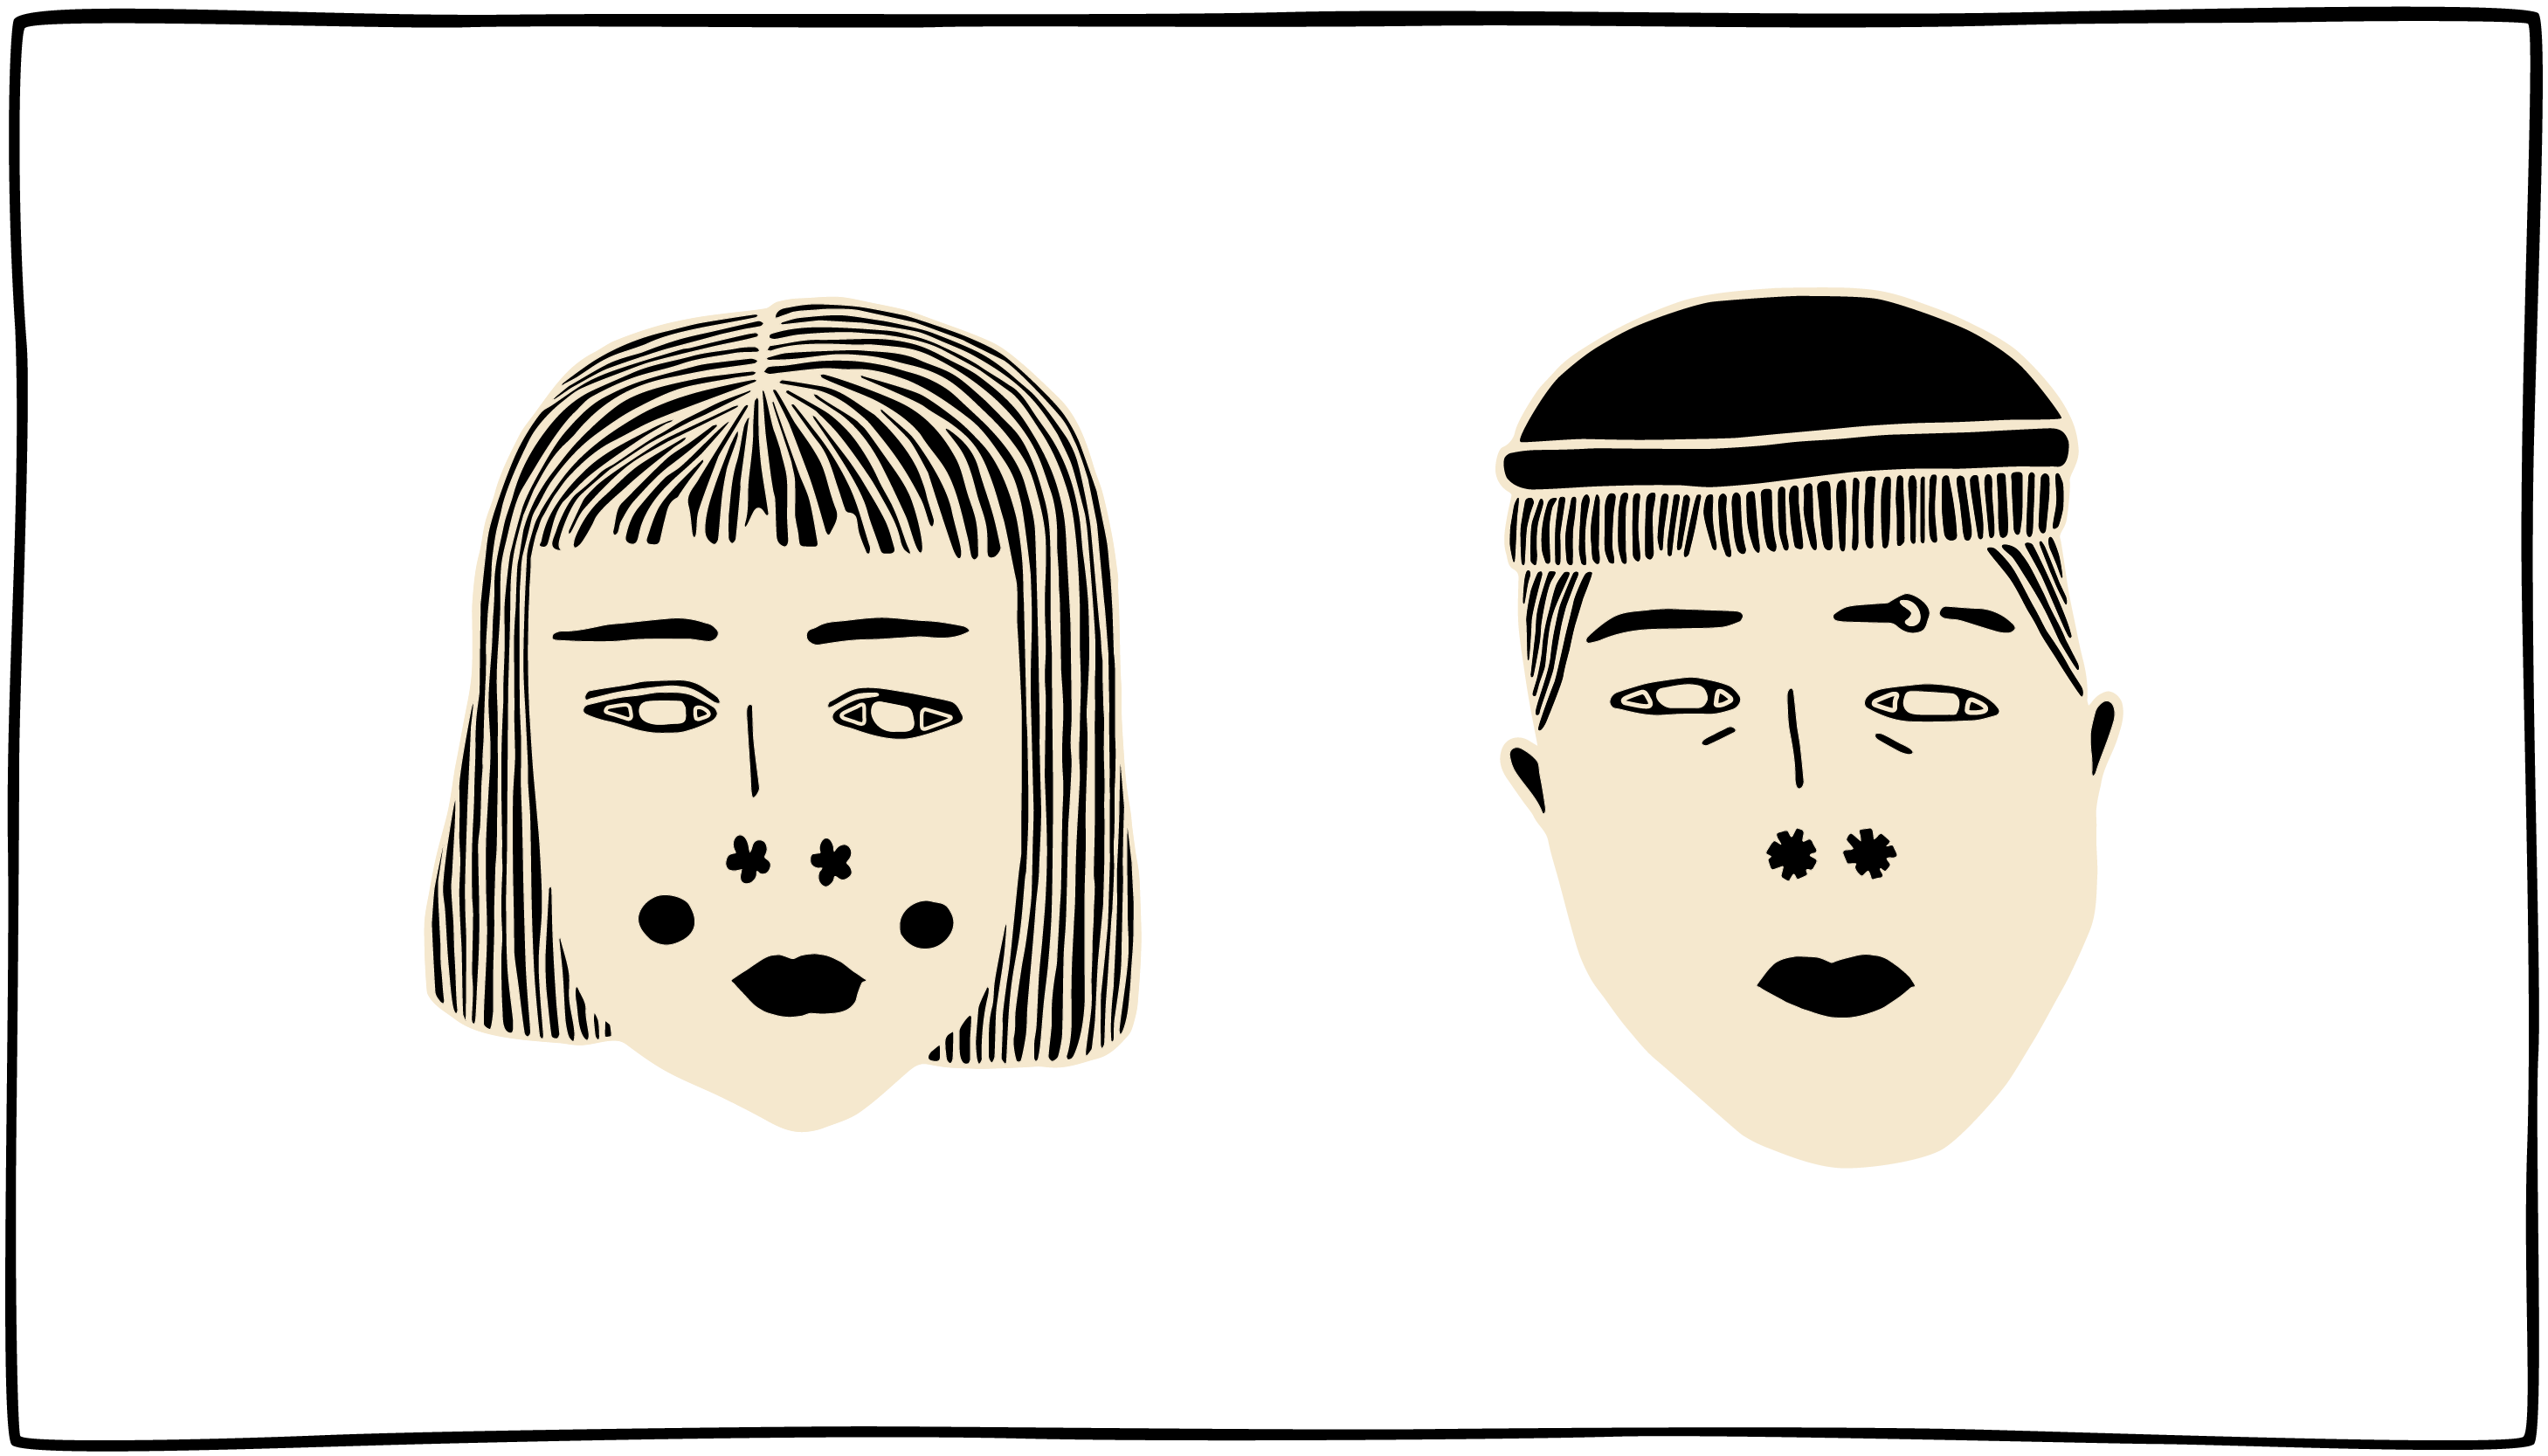 Black and off-white illustration of a short-haired girl and a boy wearing a beanie